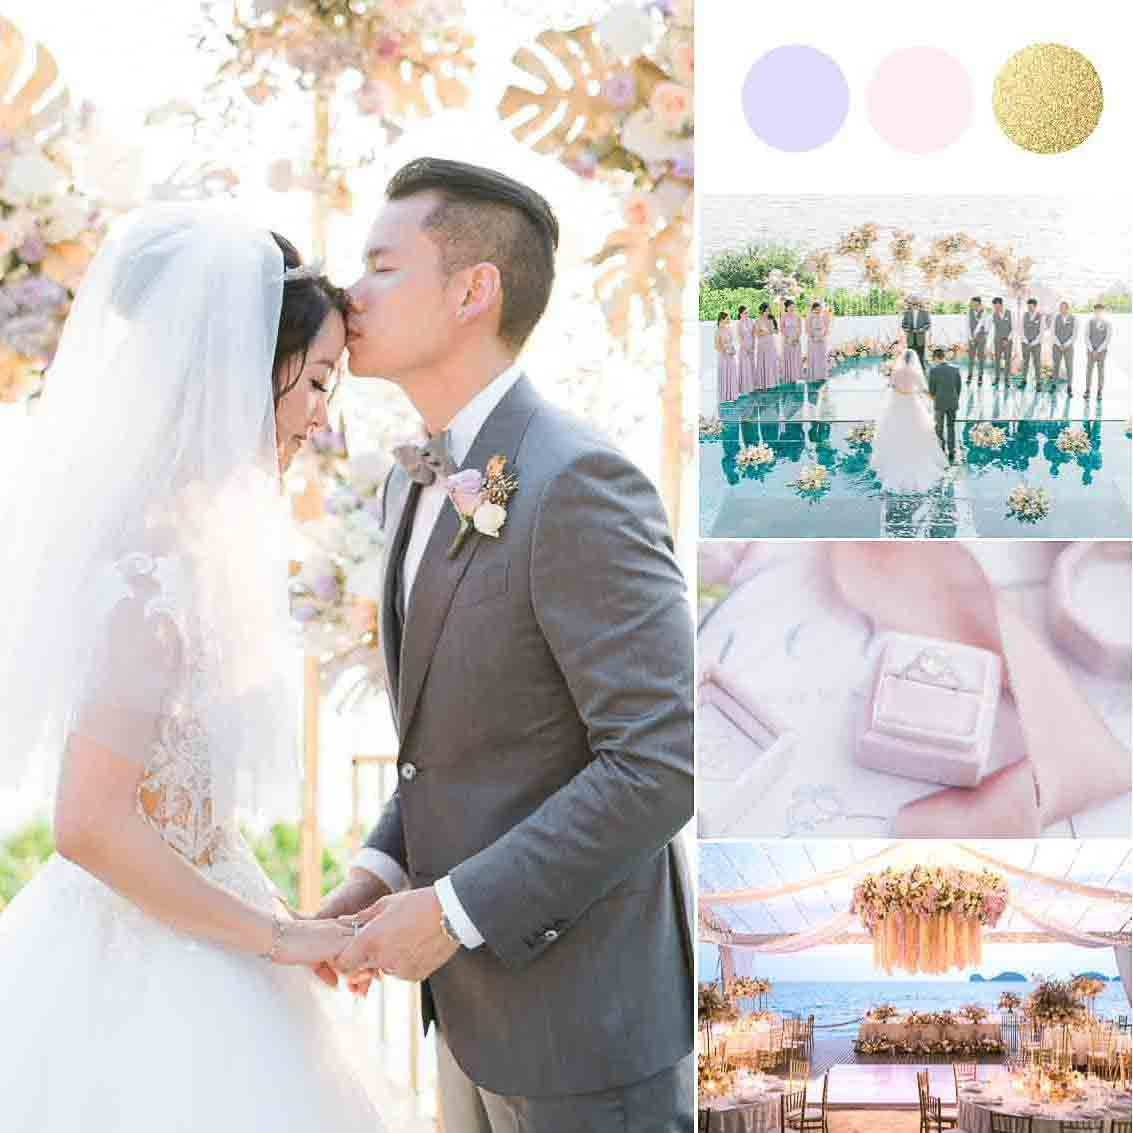 Our Founder's Breathtakingly Gorgeous 'Tropical Romance' Wedding Weekend [Conrad Koh Samui]